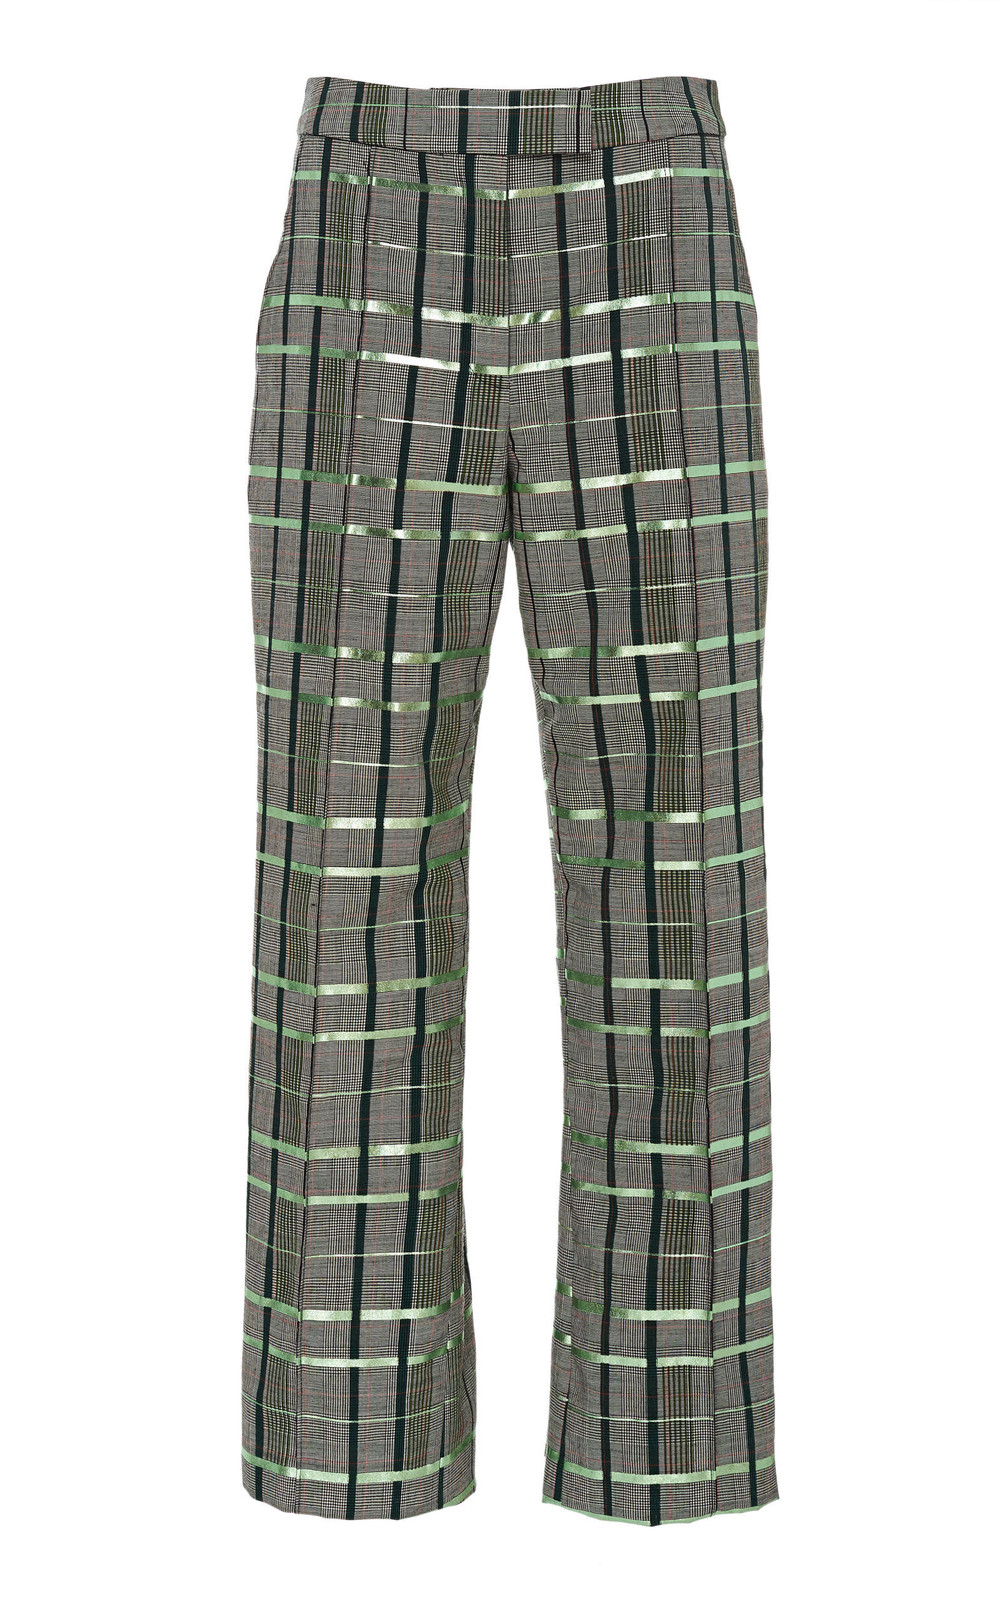 Rosie Assoulin Plaid Wool-Blend Straight-Leg Pant in green